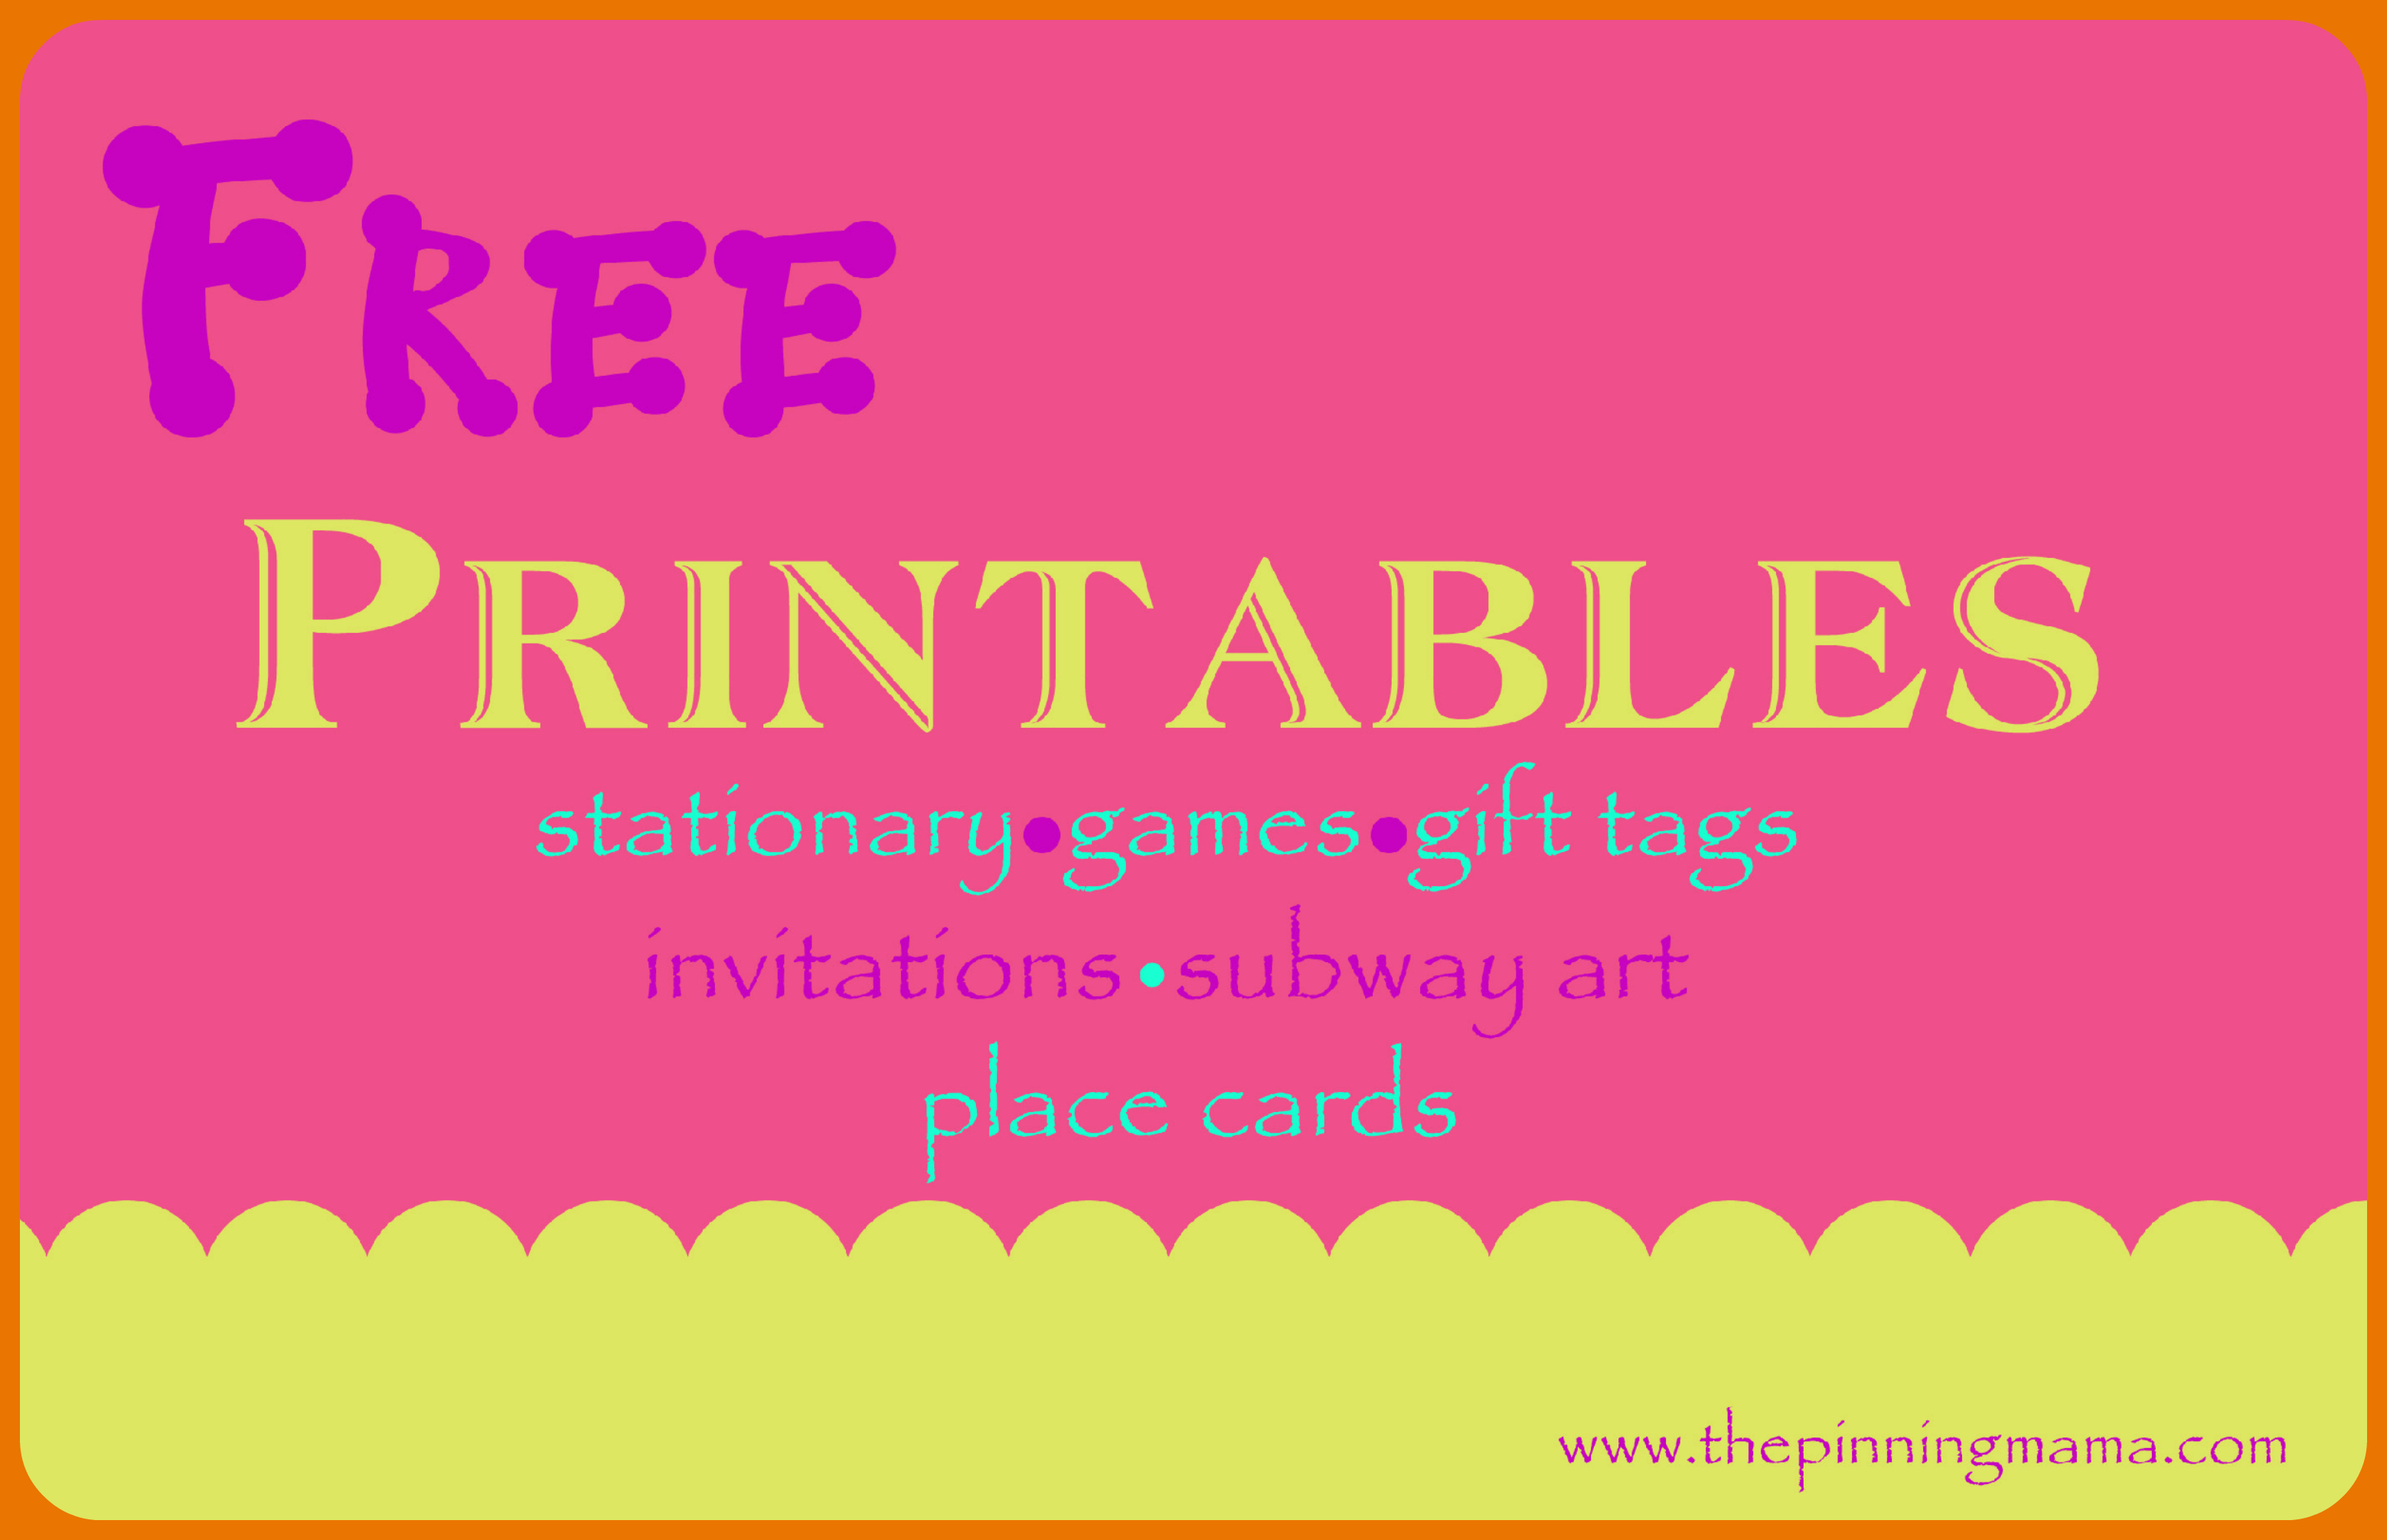 Baby Shower Invitations Templates Printable Cards Online Card Black - Free Printable Black And White Baby Shower Invitations